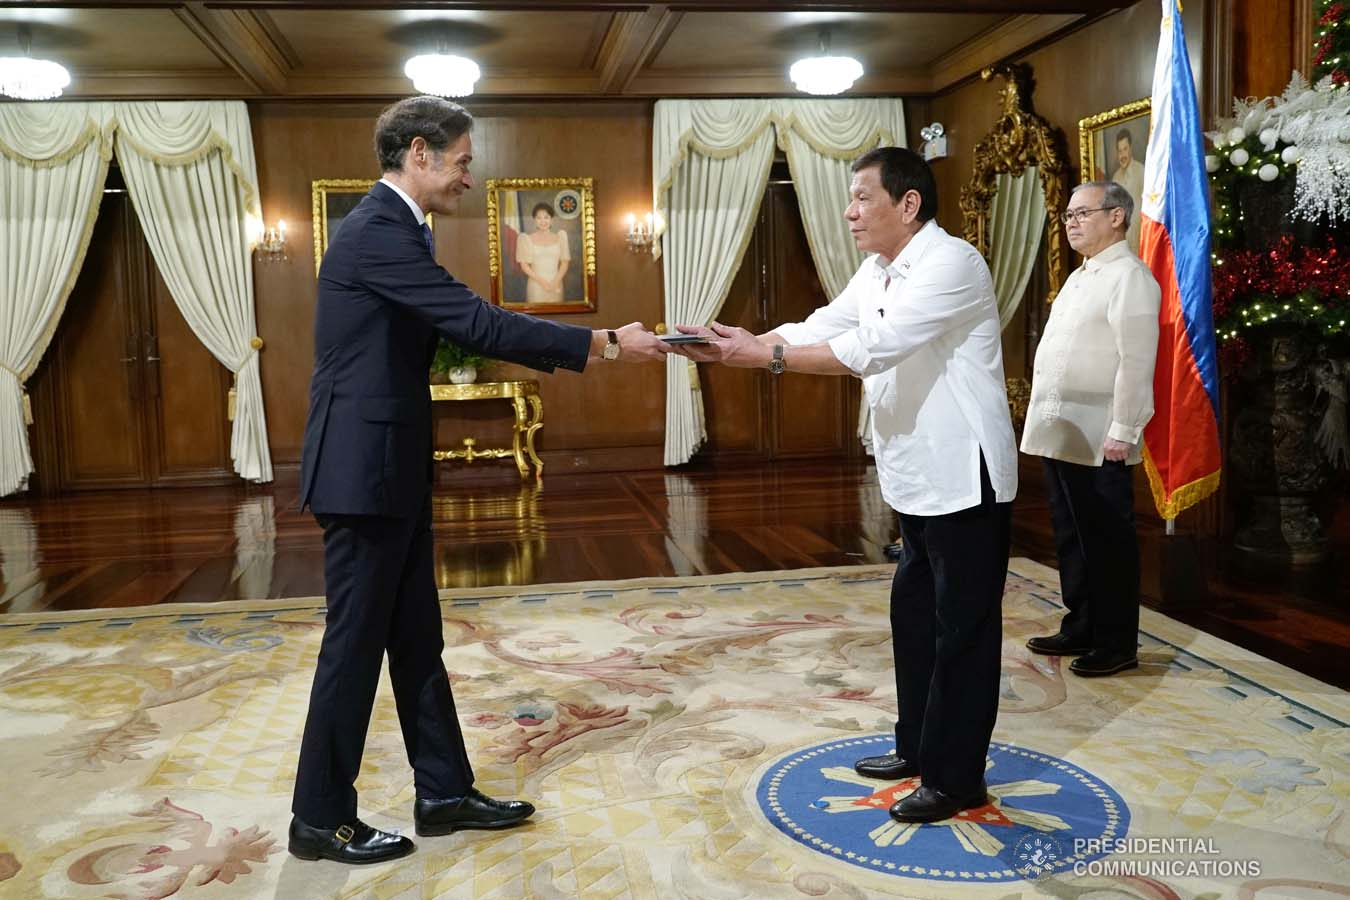 Snapshots of the ceremony of Presentation of Credentials